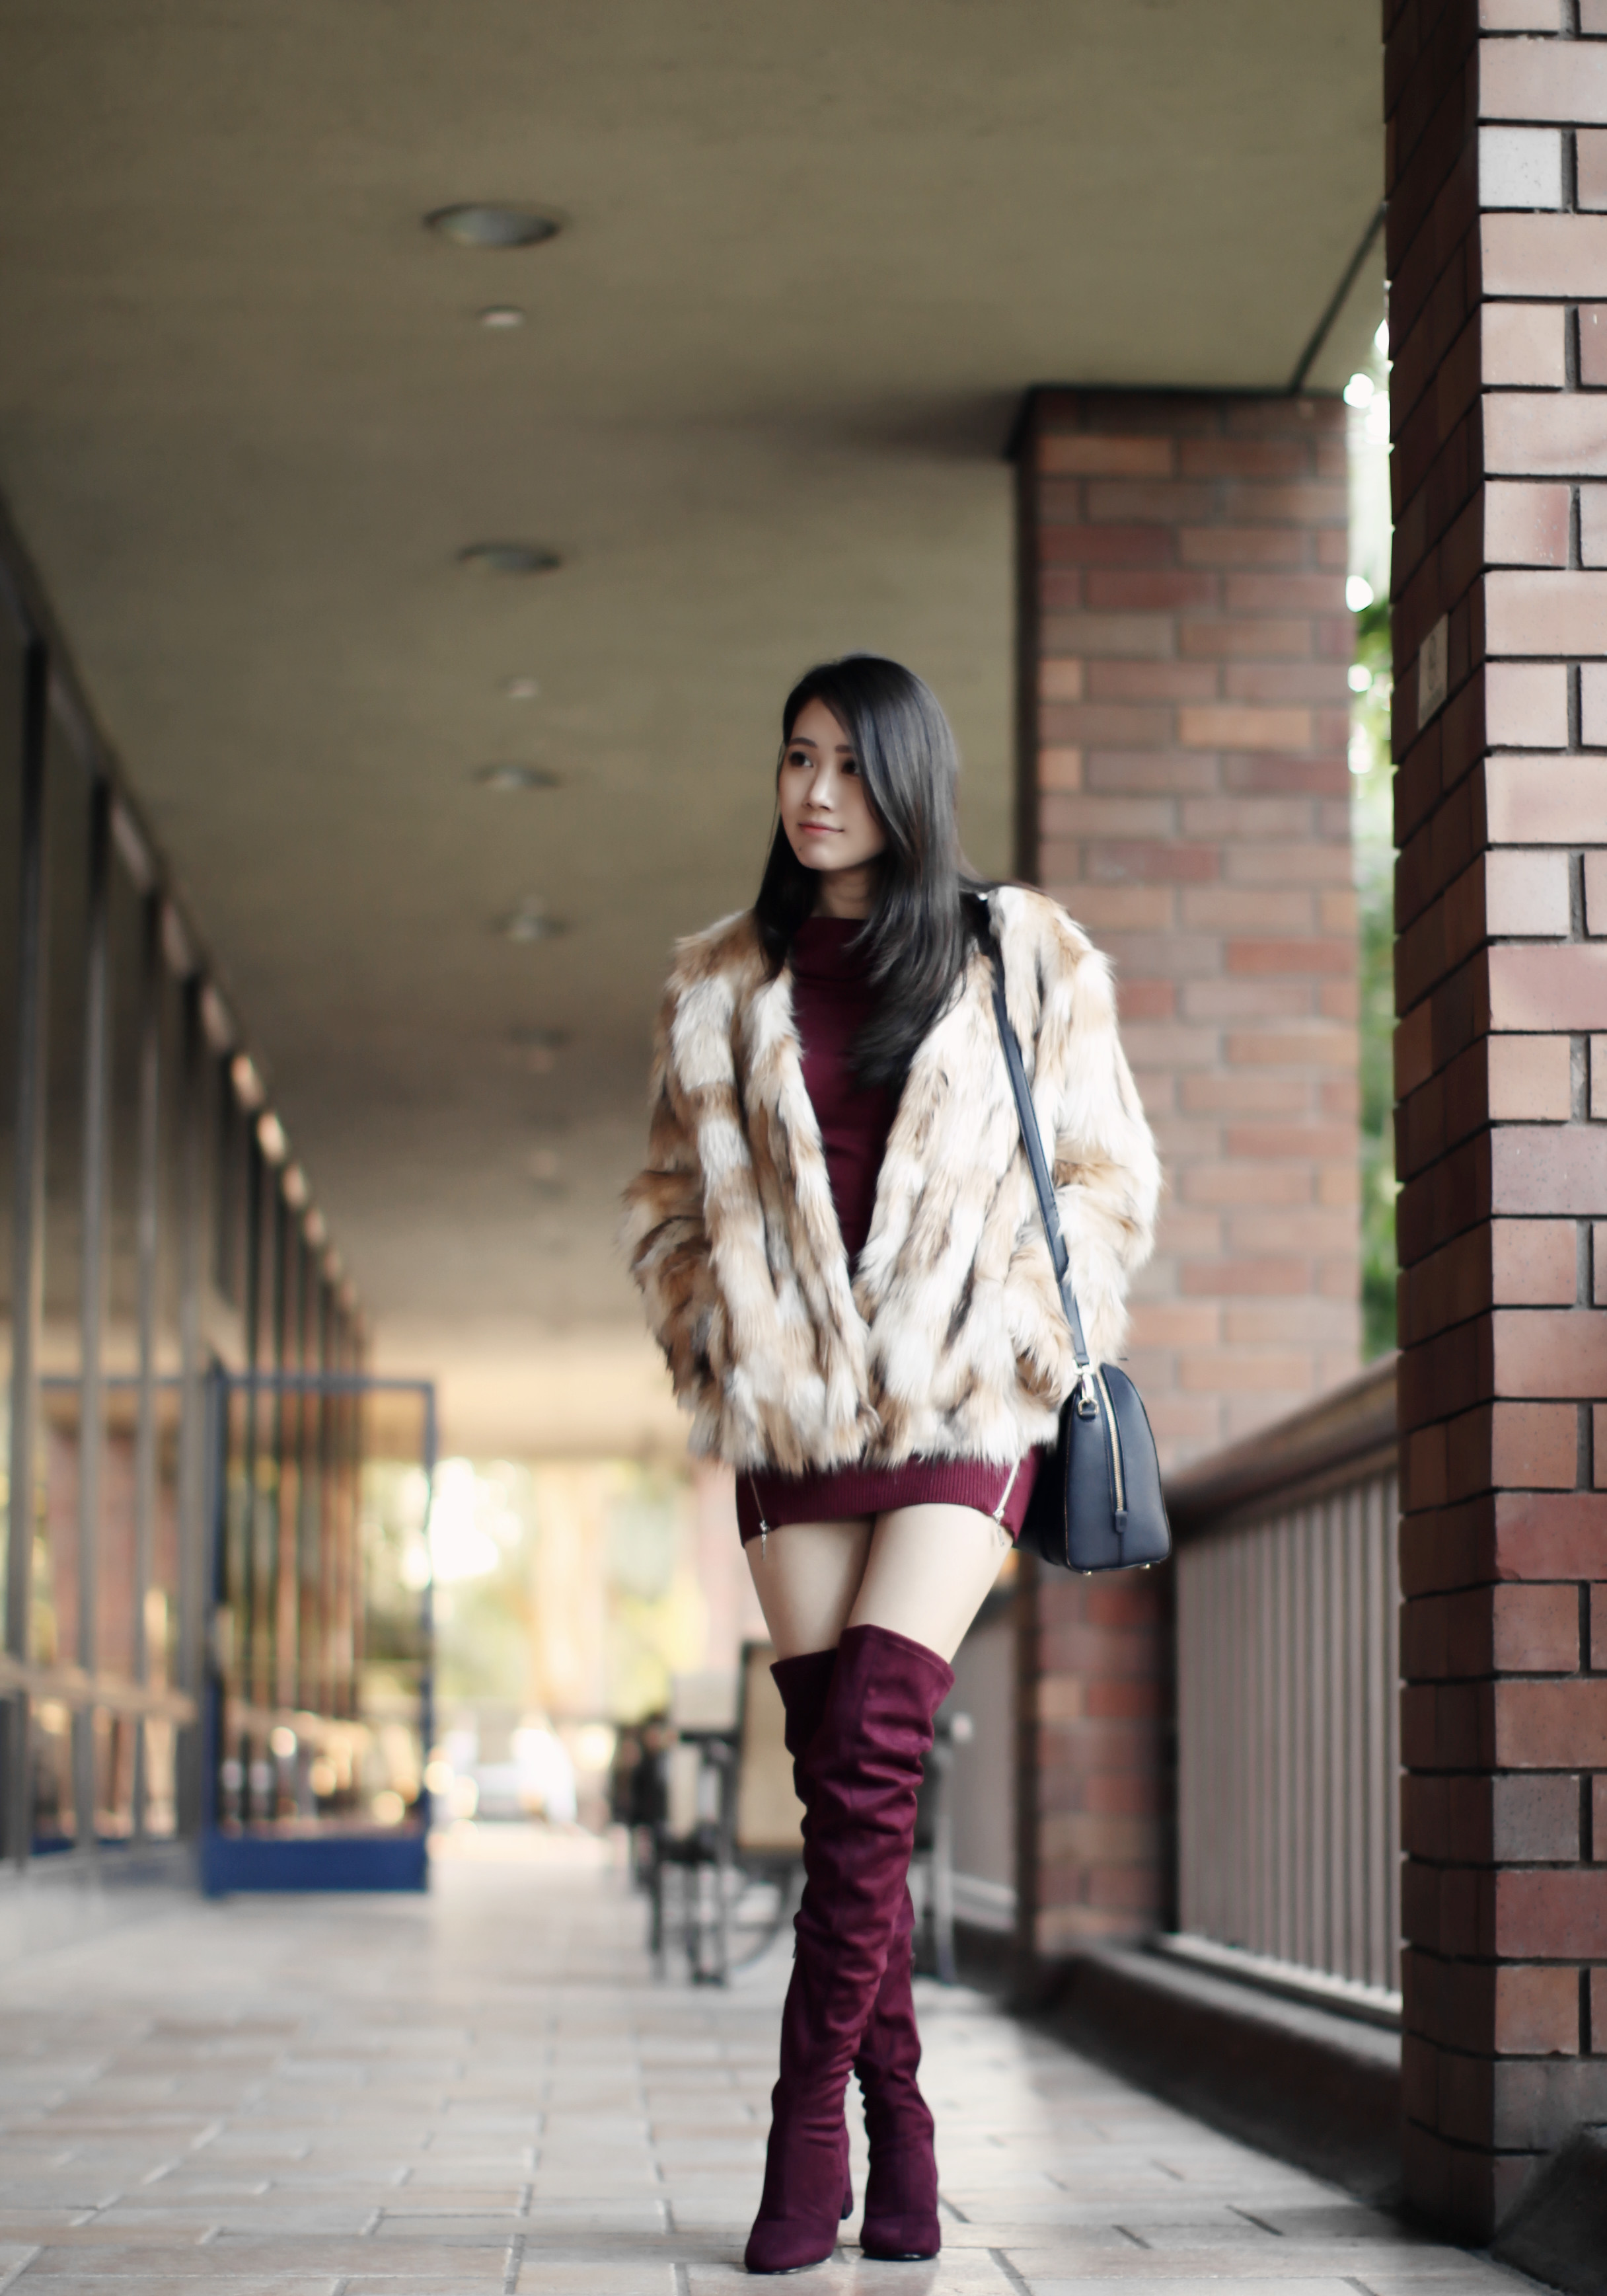 3782-ootd-fashion-style-outfitoftheday-wiwt-vincecamuto-fauxfur-otkboots-fallfashion-forever21-f21-hollister-koreanfashion-sponsored-elizabeeetht-clothestoyouuu